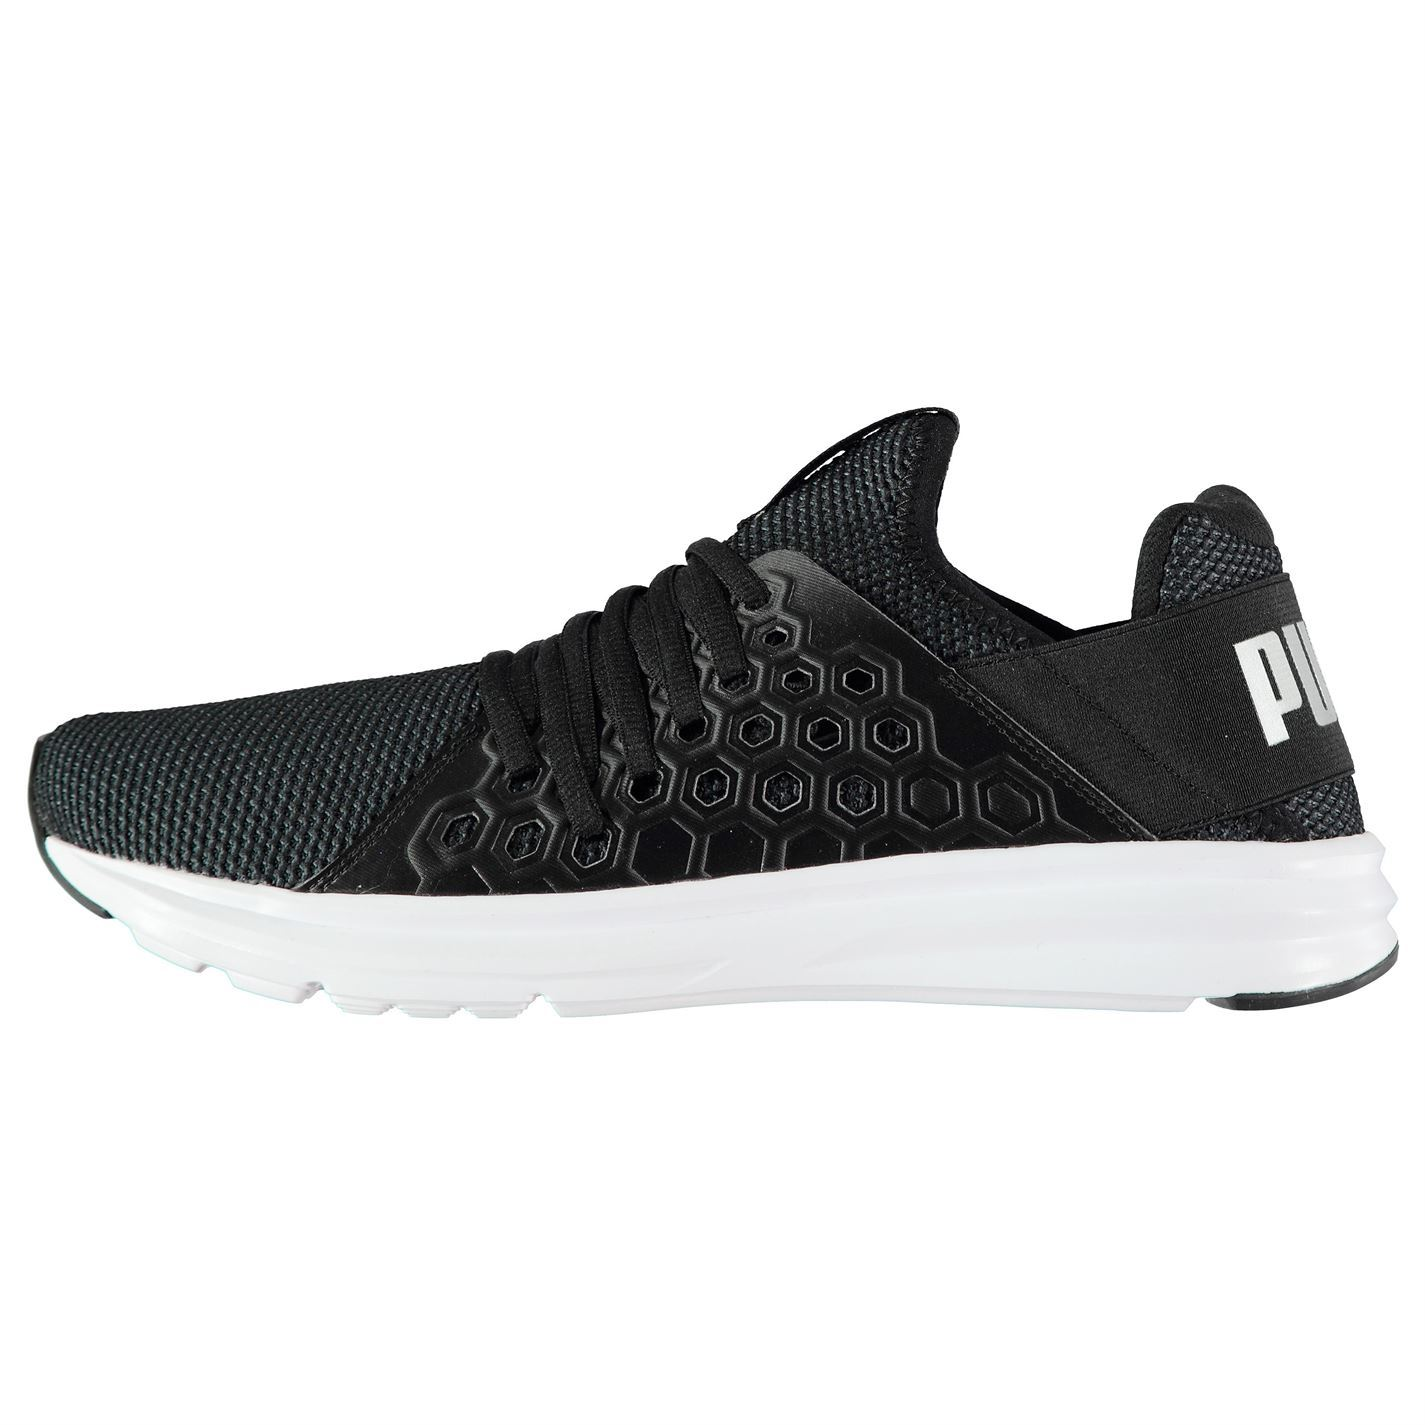 9191dc801a7e ... Puma Enzo NF Trainers Mens Black Sports Shoes Sneakers ...